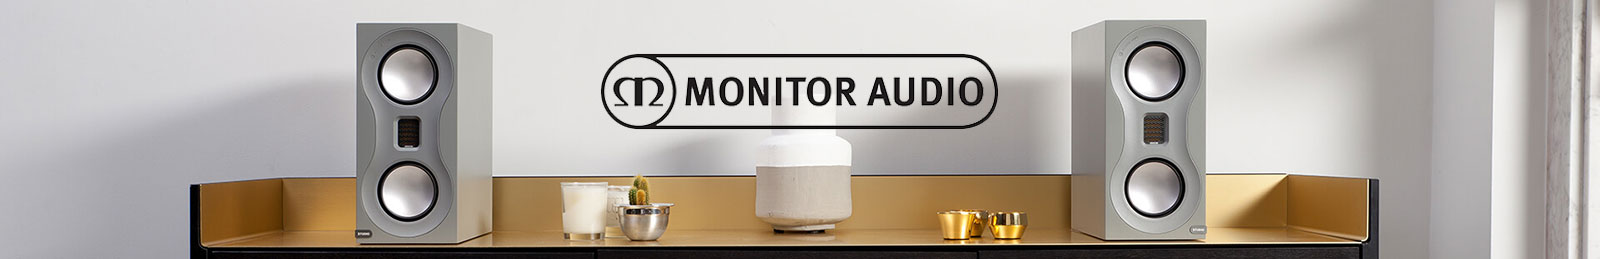 Monitor Audio Banner